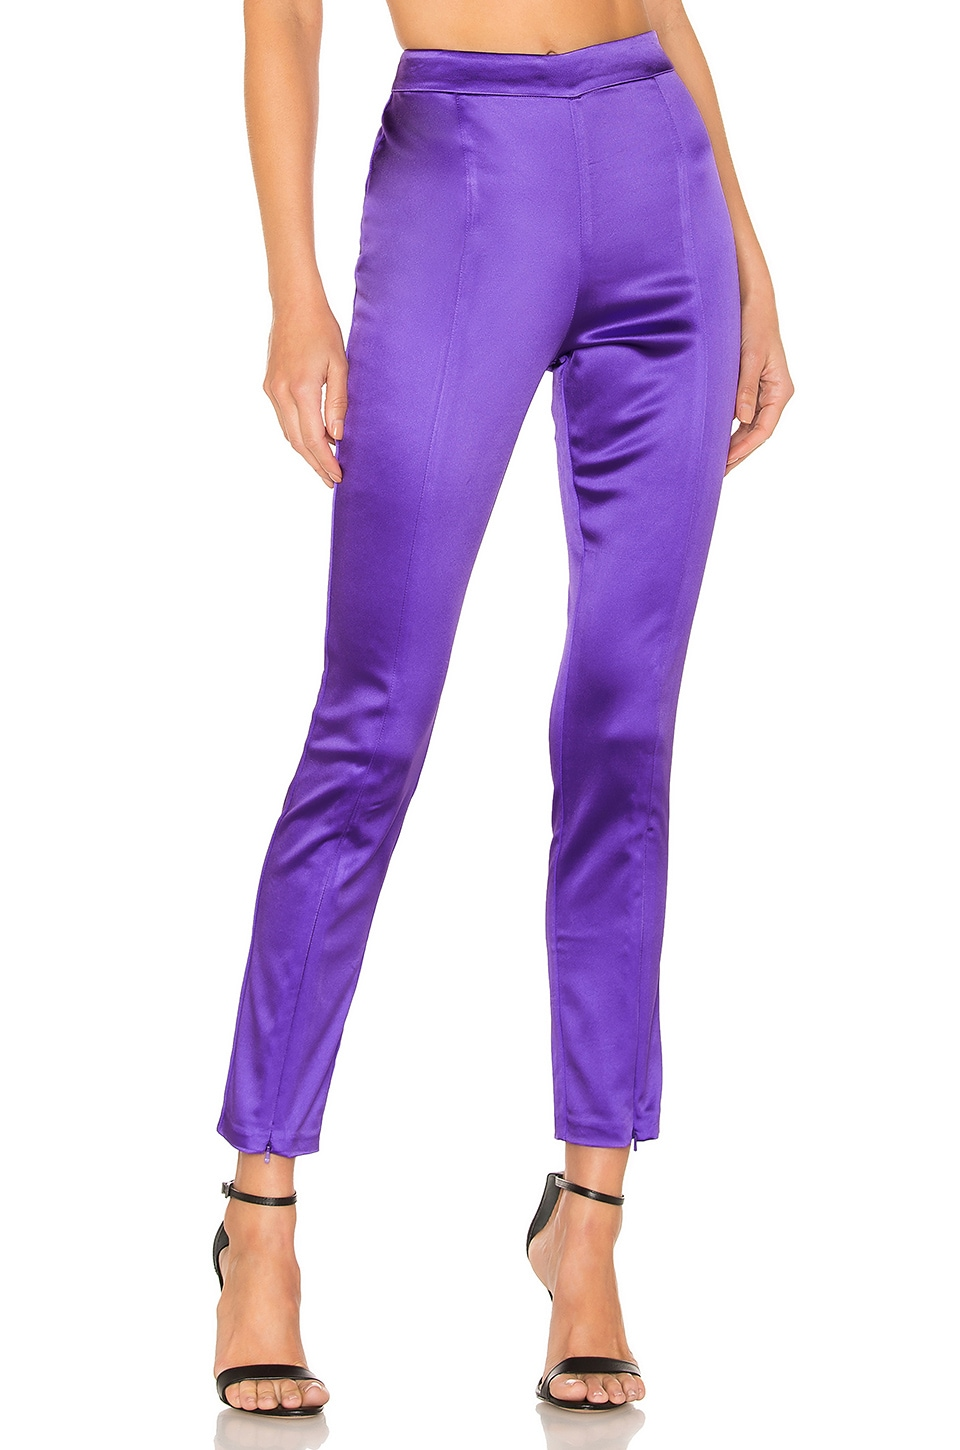 Cynthia Rowley Rush Pant in Ultra Violet